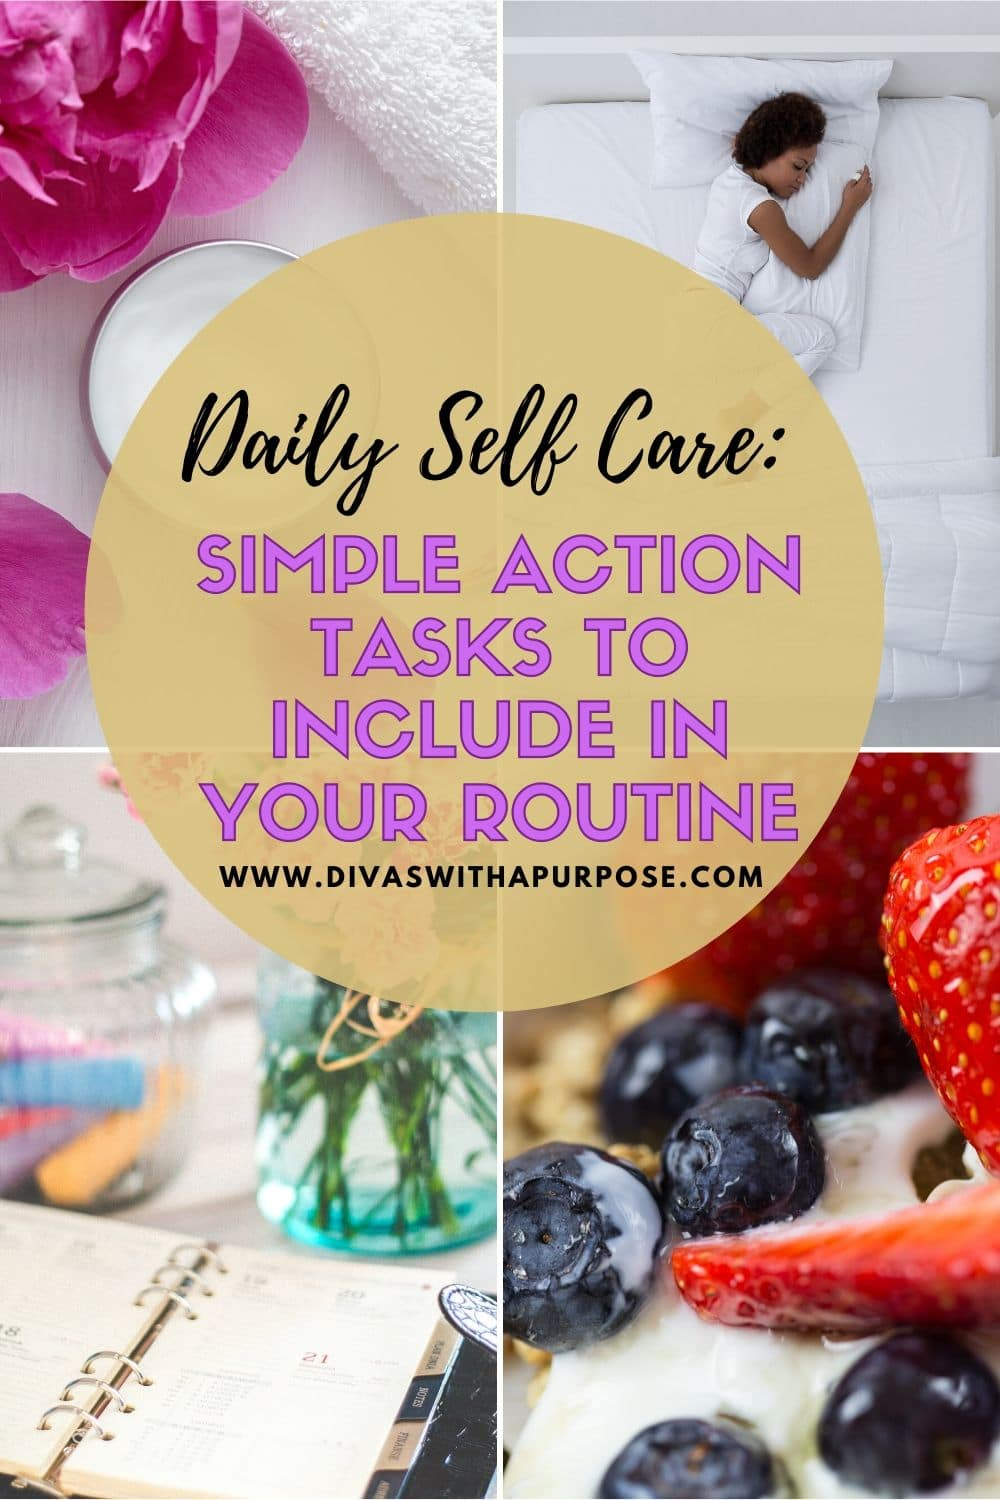 Let's talk about some simple and affordable ways to practice self care regularly | #selfcare #dailyroutine